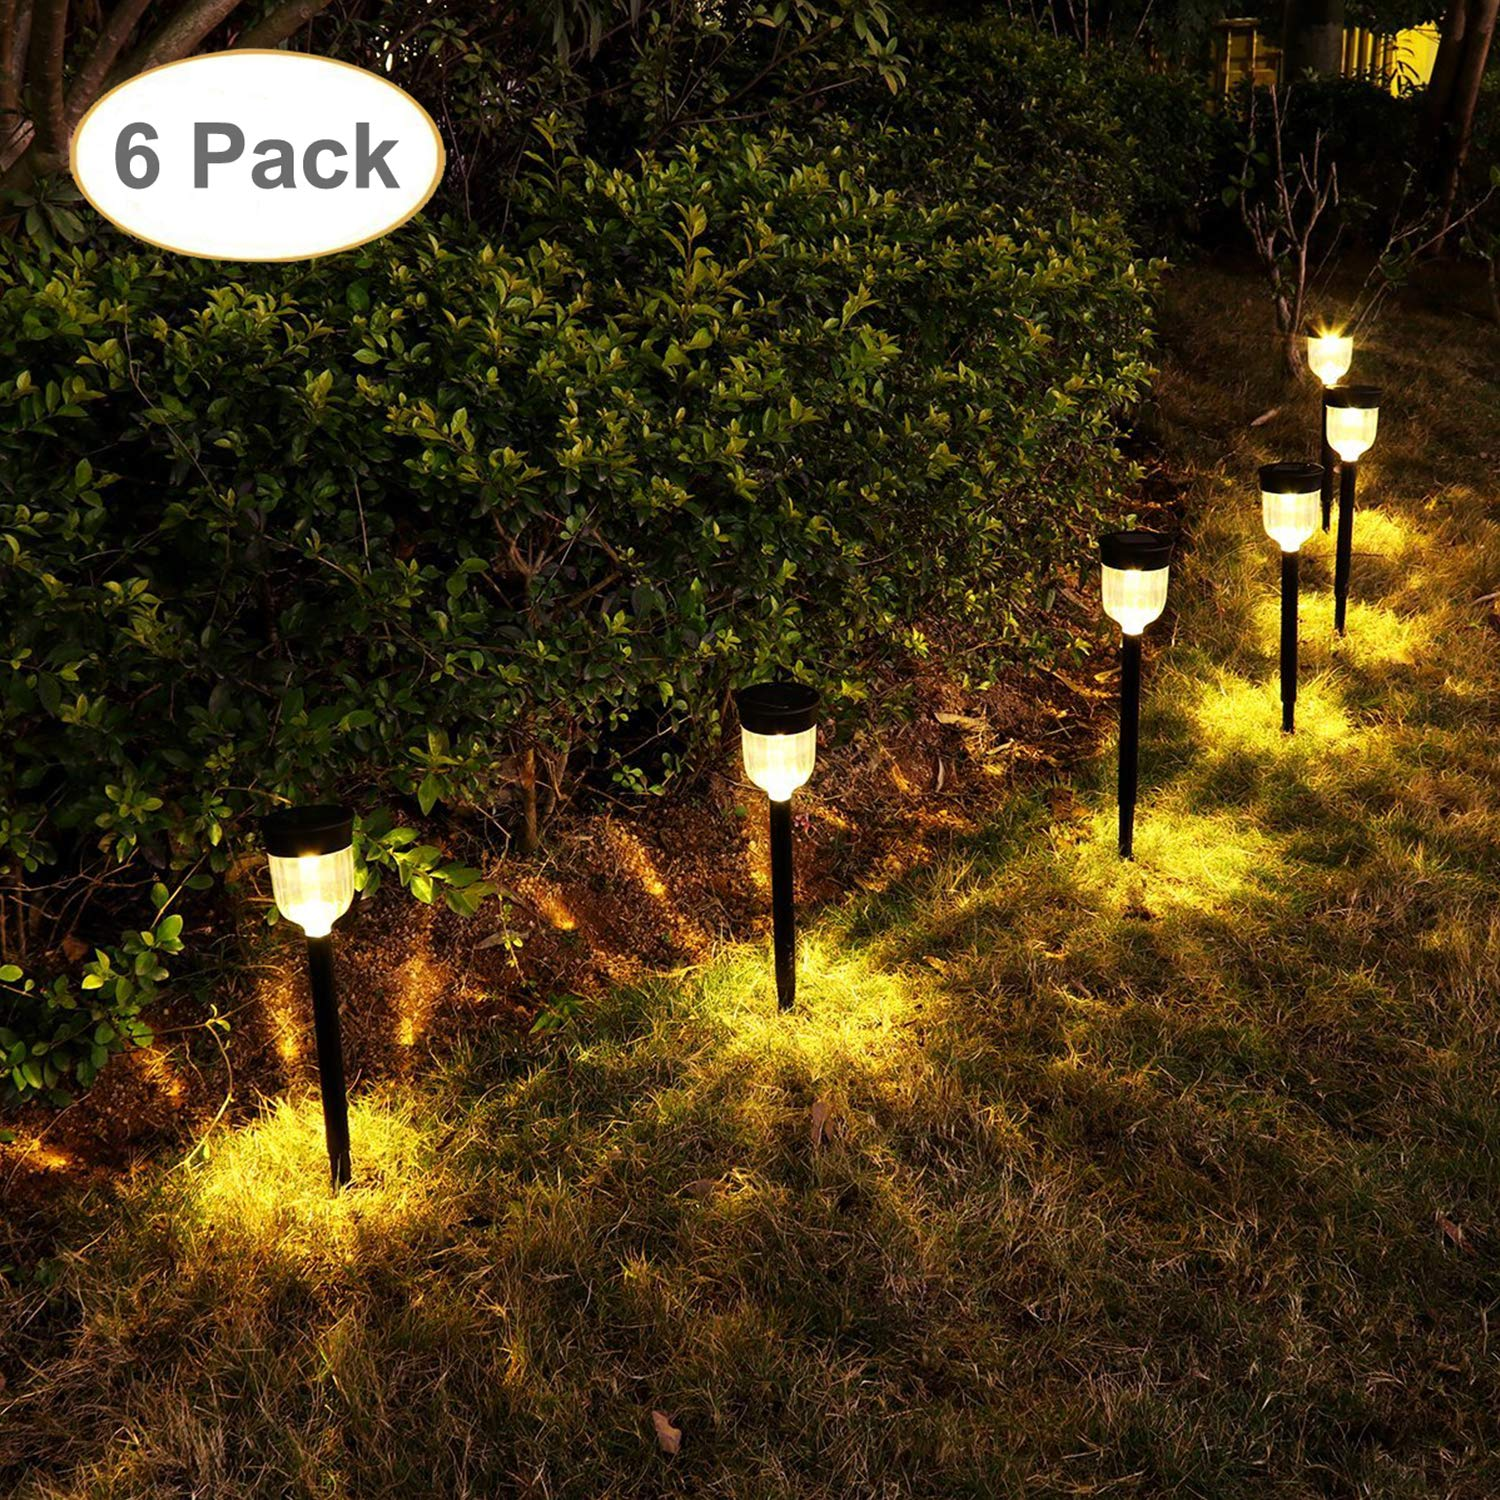 GELOO Solar Pathway Lights 6 Pack Solar Outdoor Lights Solar Garden Lights Outdoor Solar Landscape Lights for Lawn, Patio, Yard, Walkway, Driveway by GELOO